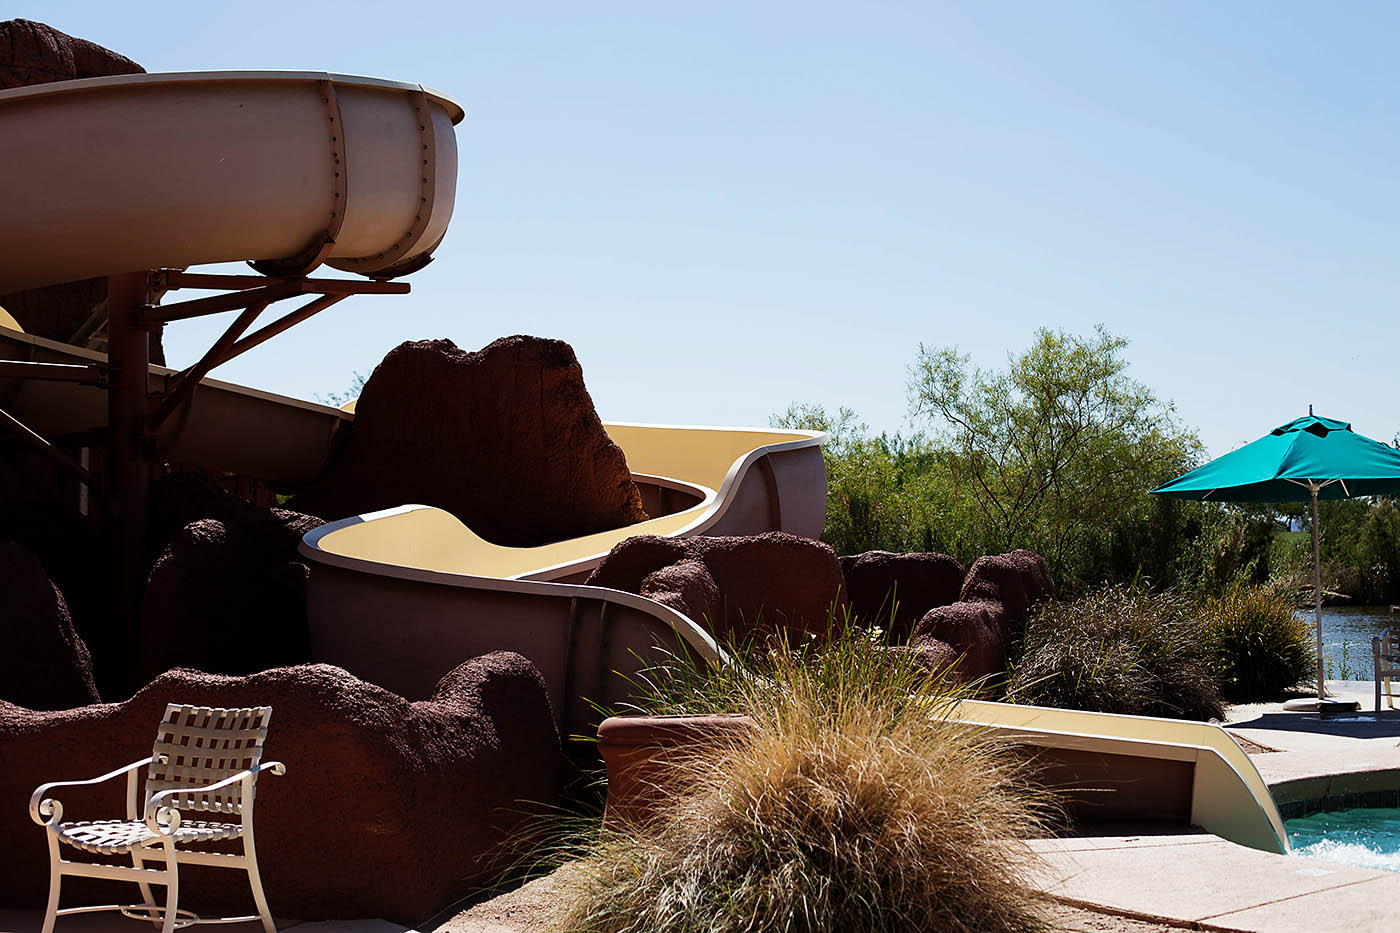 Sheraton Grand at Wild Horse Pass is a great choice for a Phoenix summer staycation